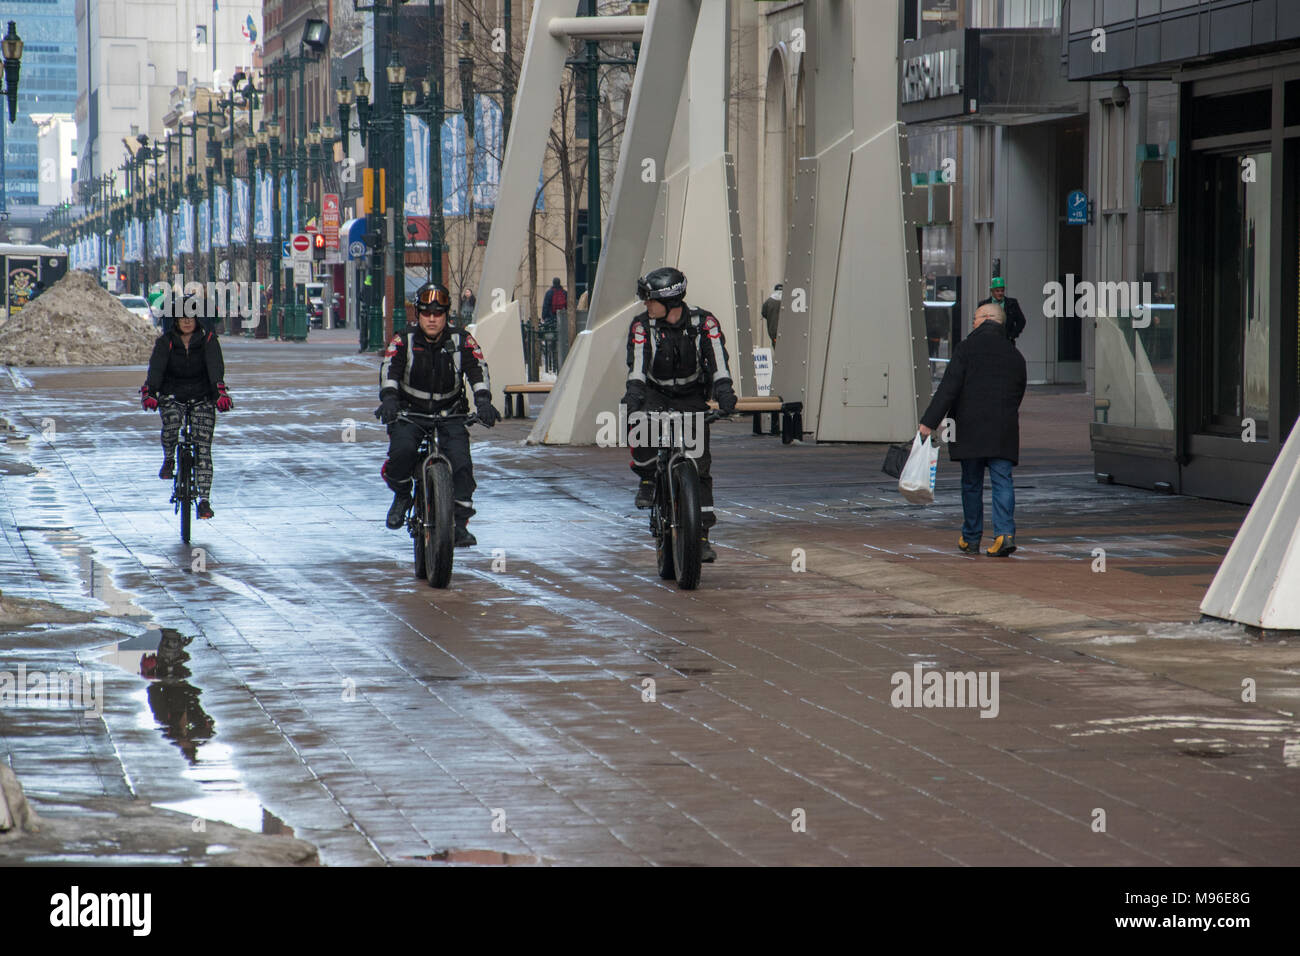 Calgary Police Services Mountain Bike Division on Trek Fat Bikes. Stephen Avenue, Calgary, Alberta, Canada - Stock Image